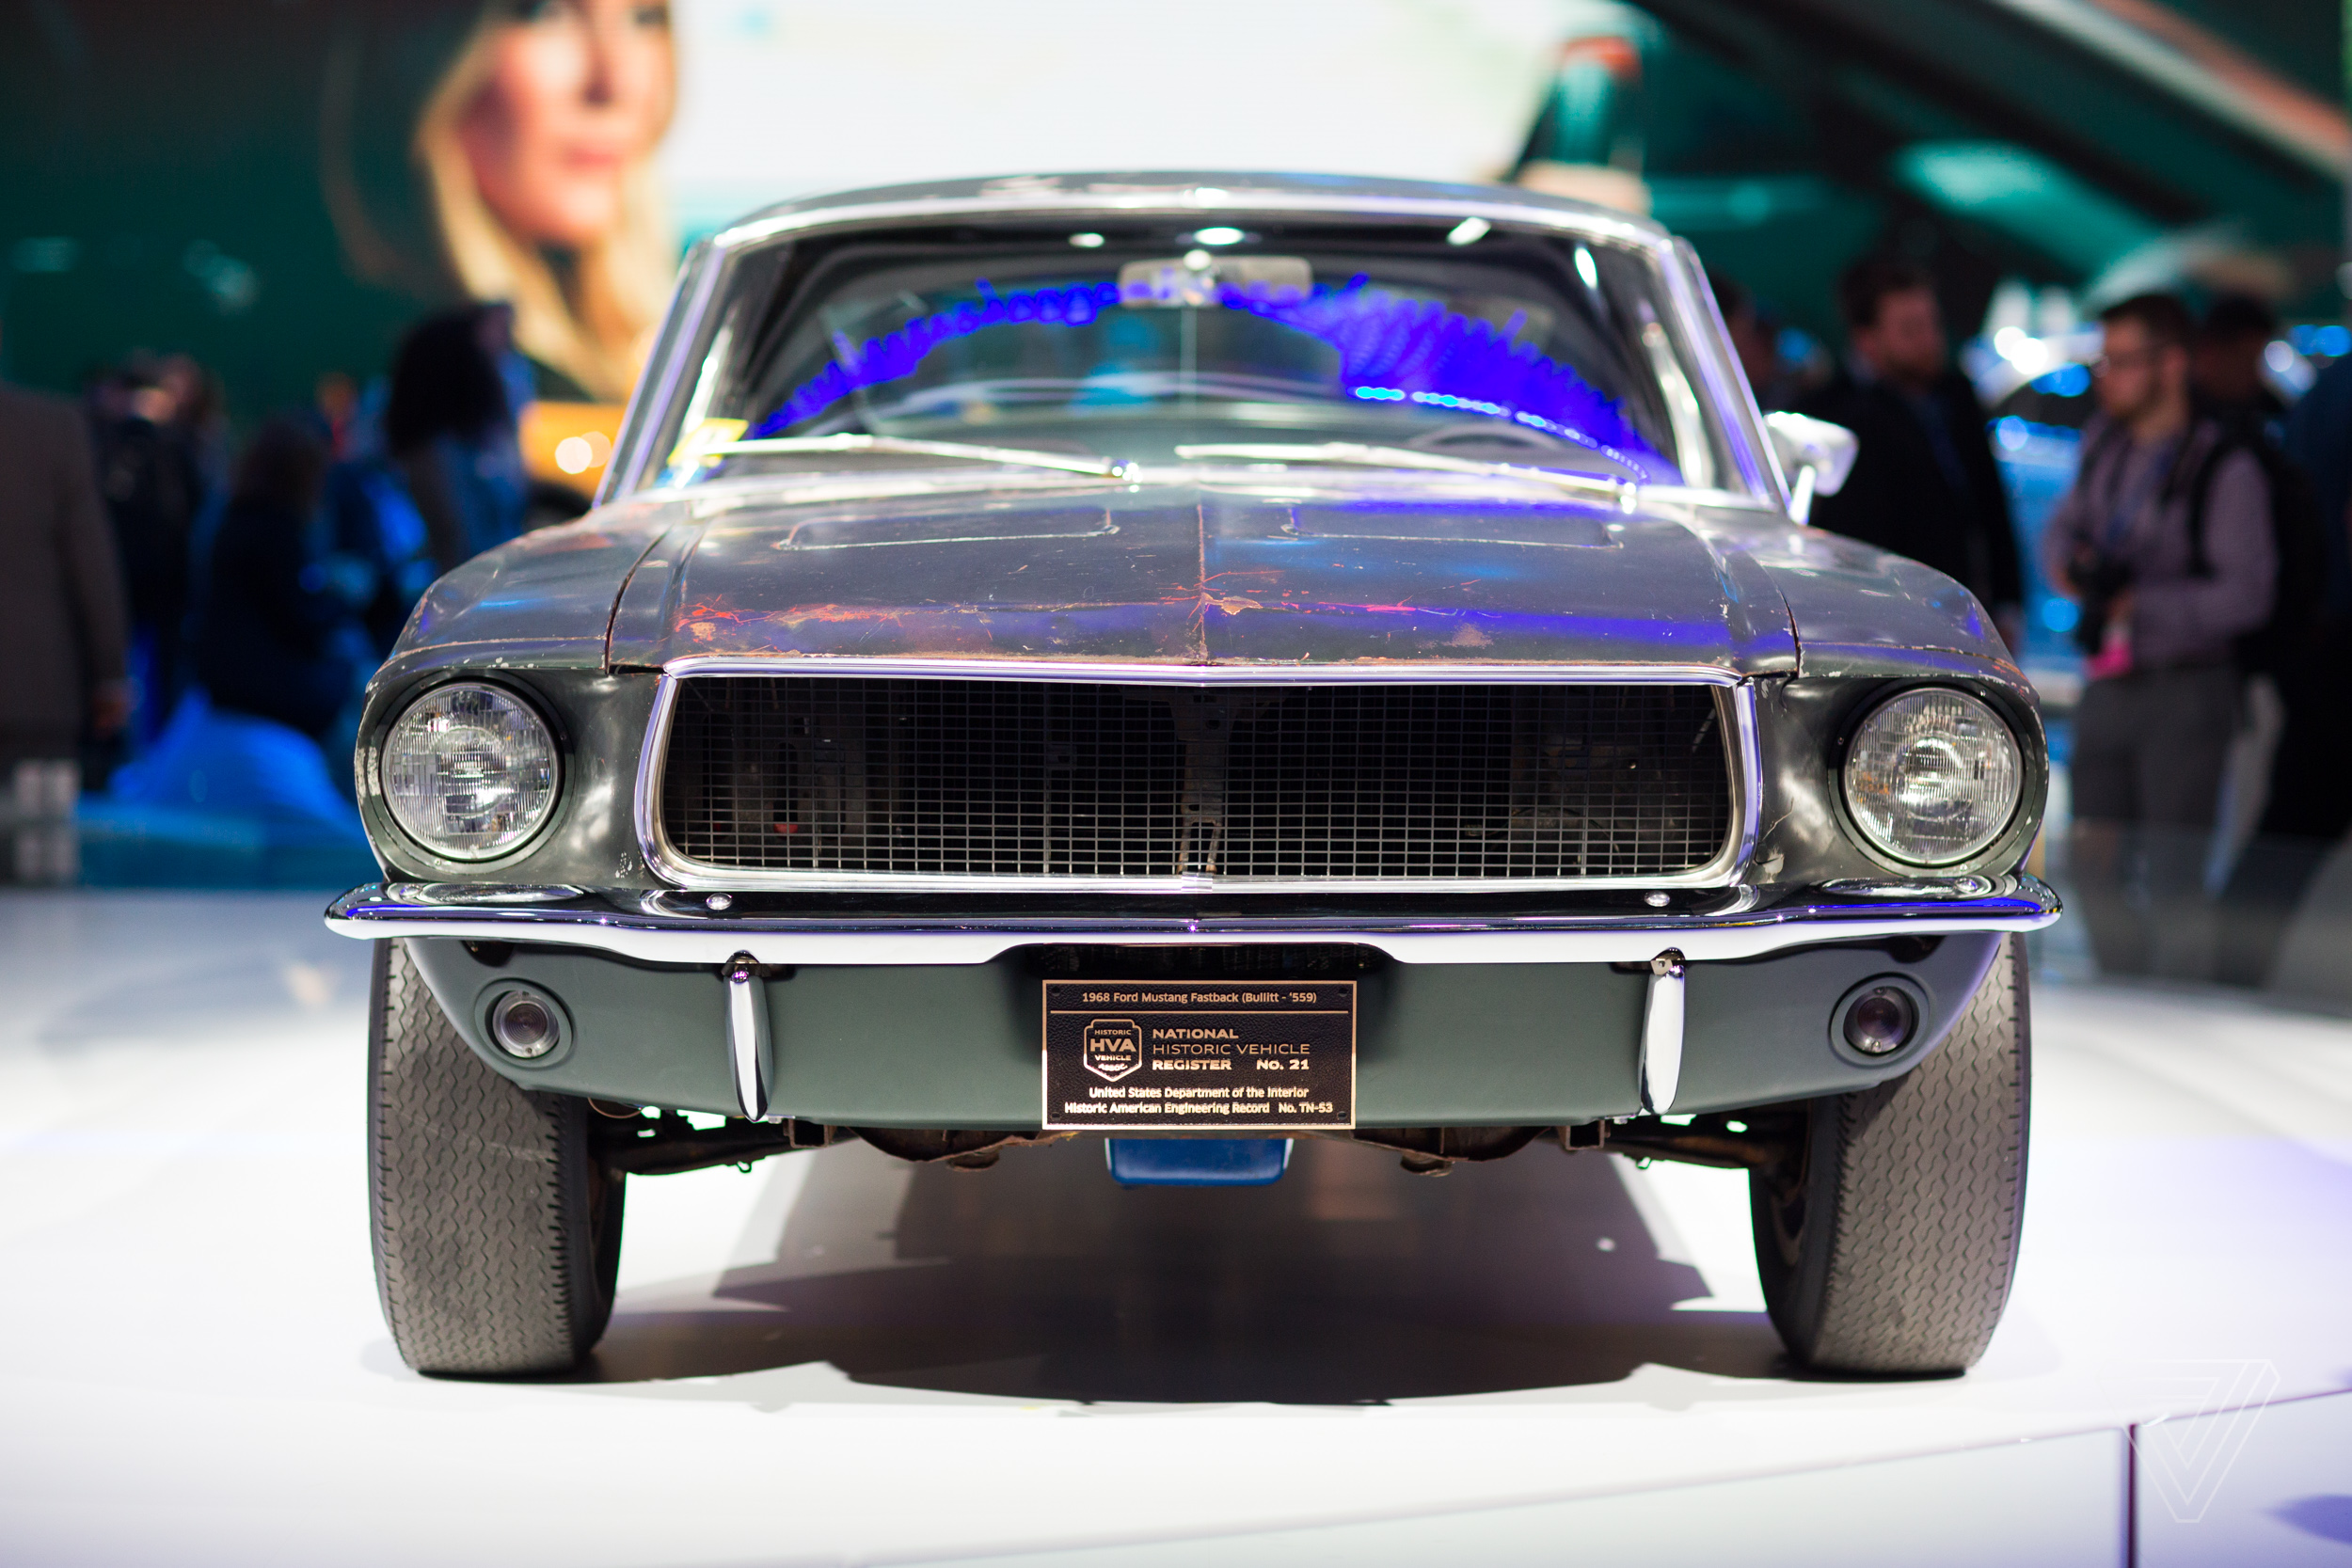 The Return Of Ford Mustang Bullitt Tugs At Auto Lovers Heart - American muscle car show 2018